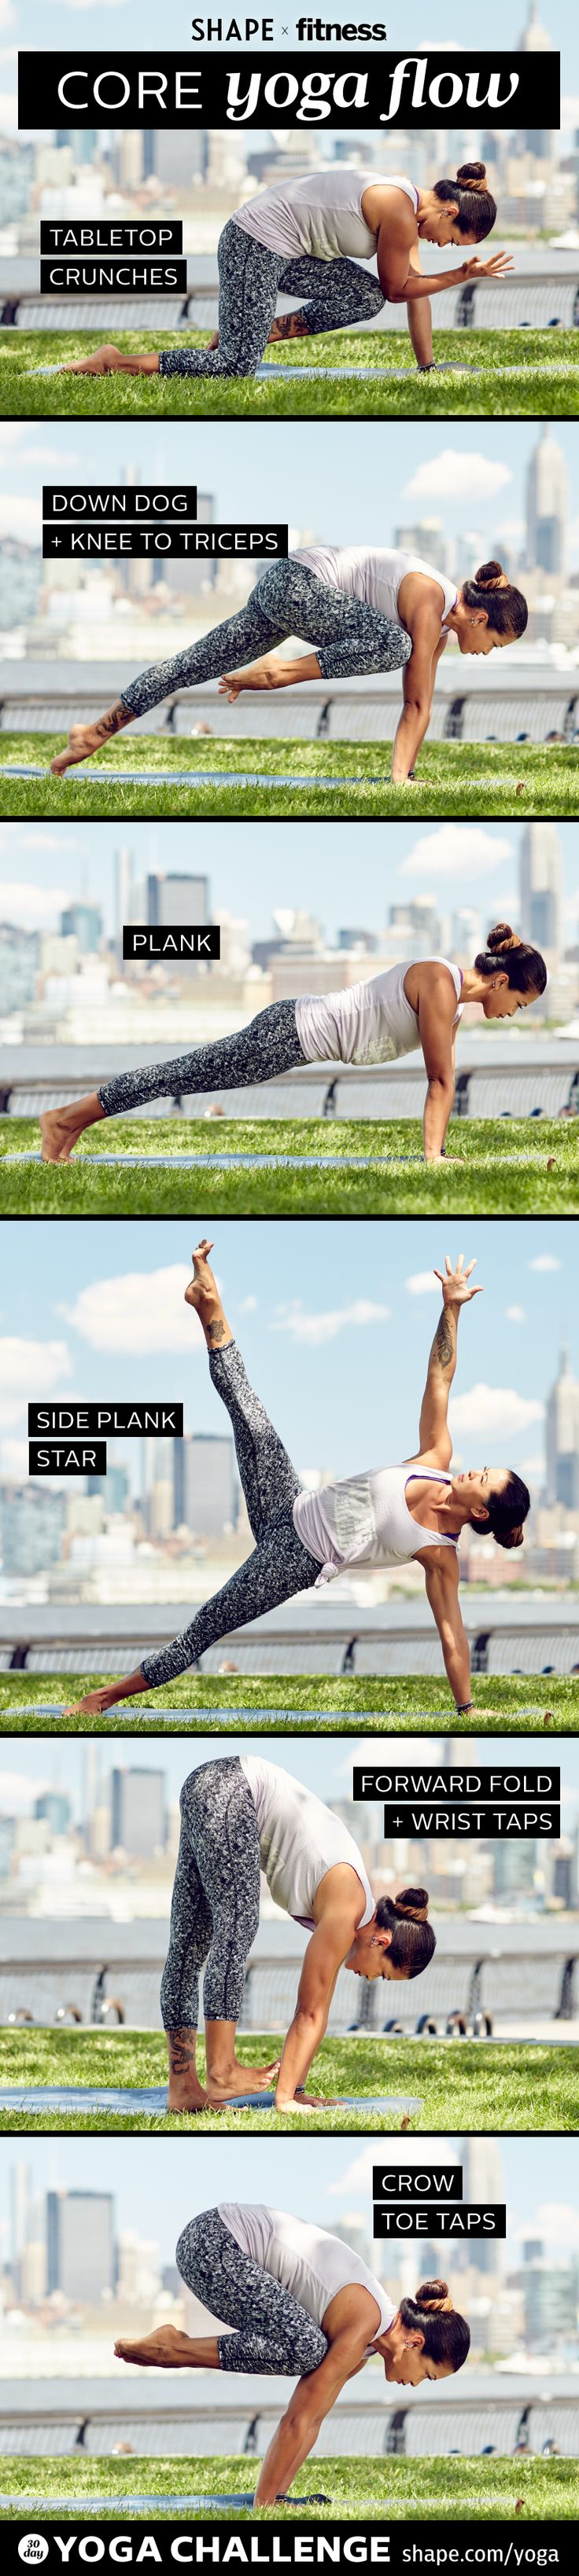 Week 2 of our Yoga Challenge with Fitness Magazine and Two Fit Moms. Strengthen your core with beauty and grace with asanas that work your abs.